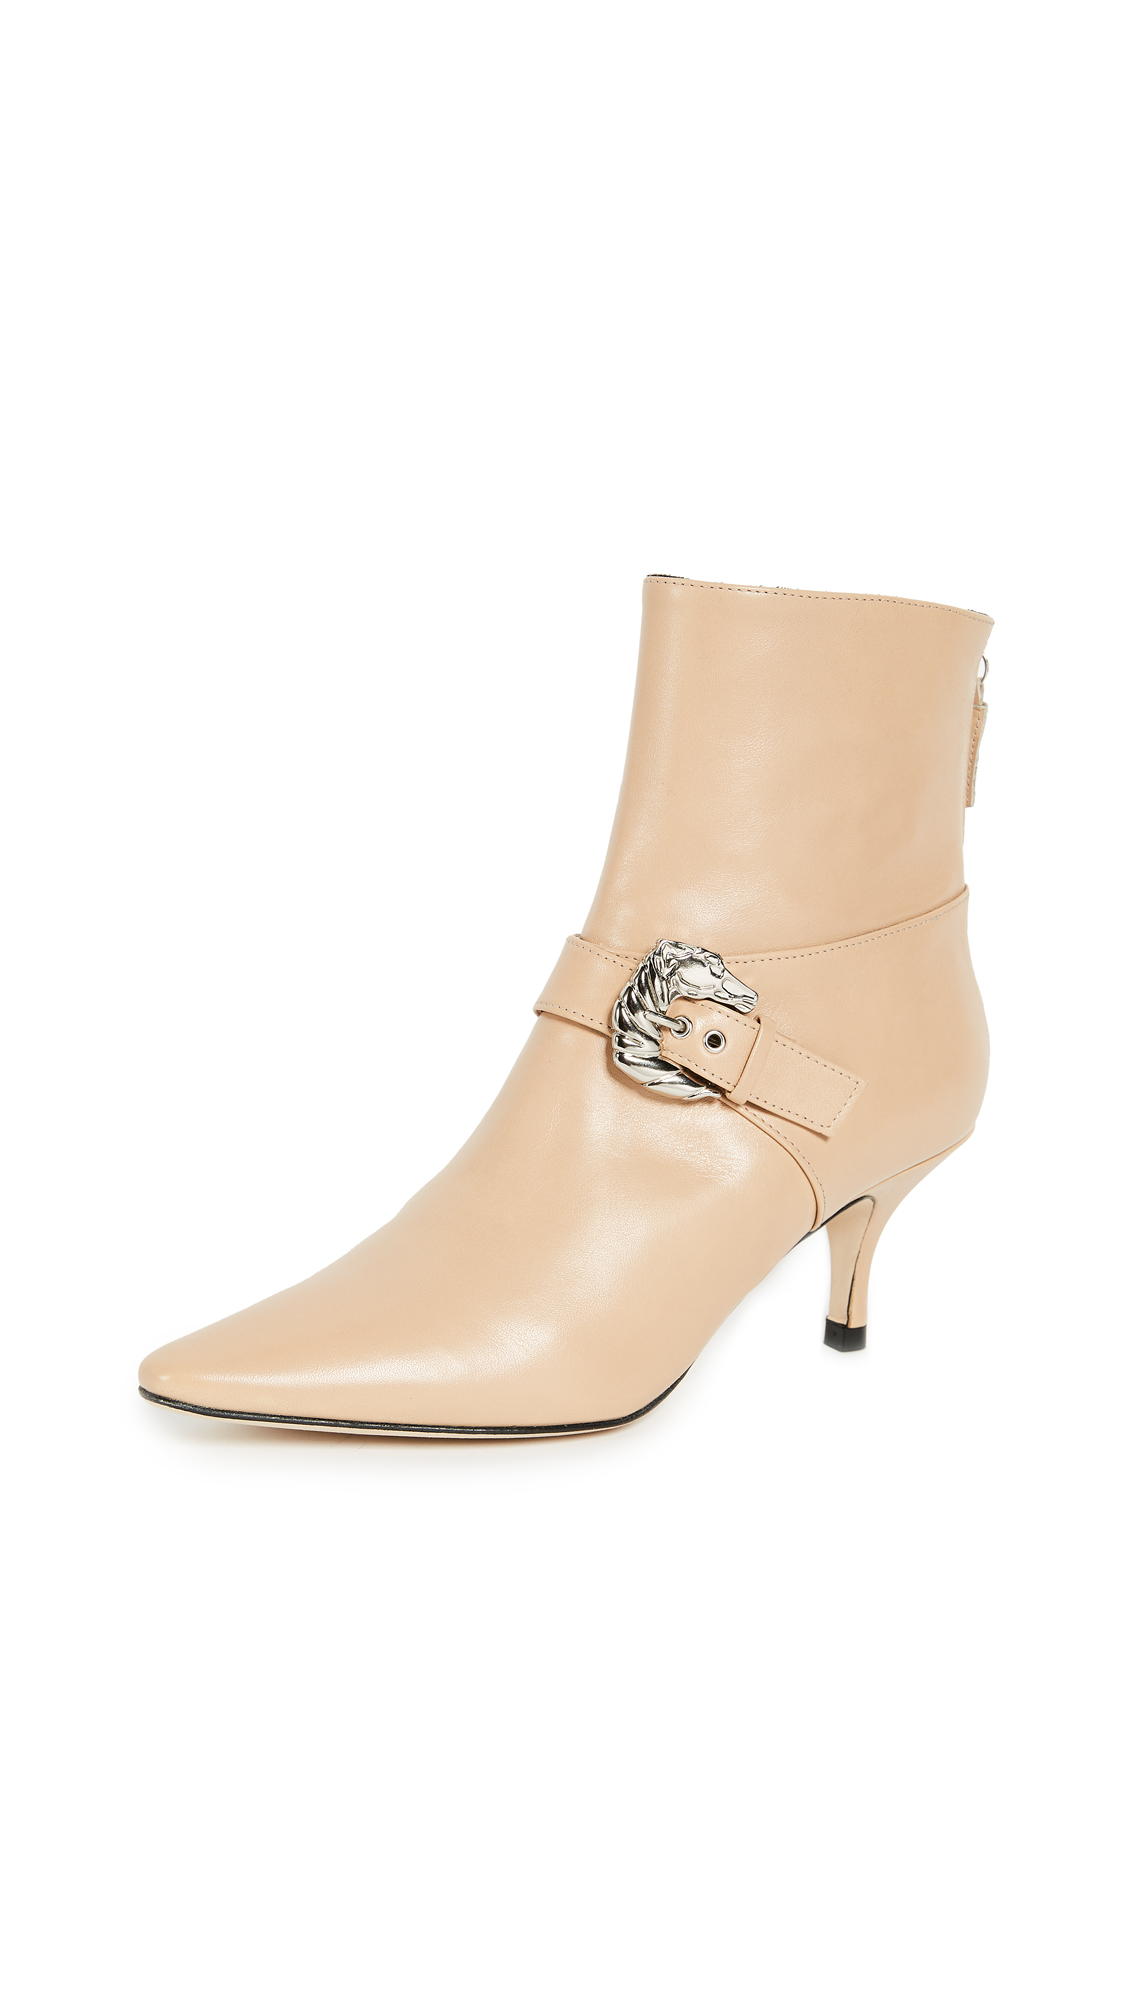 Dorateymur Saloon Booties - Beige